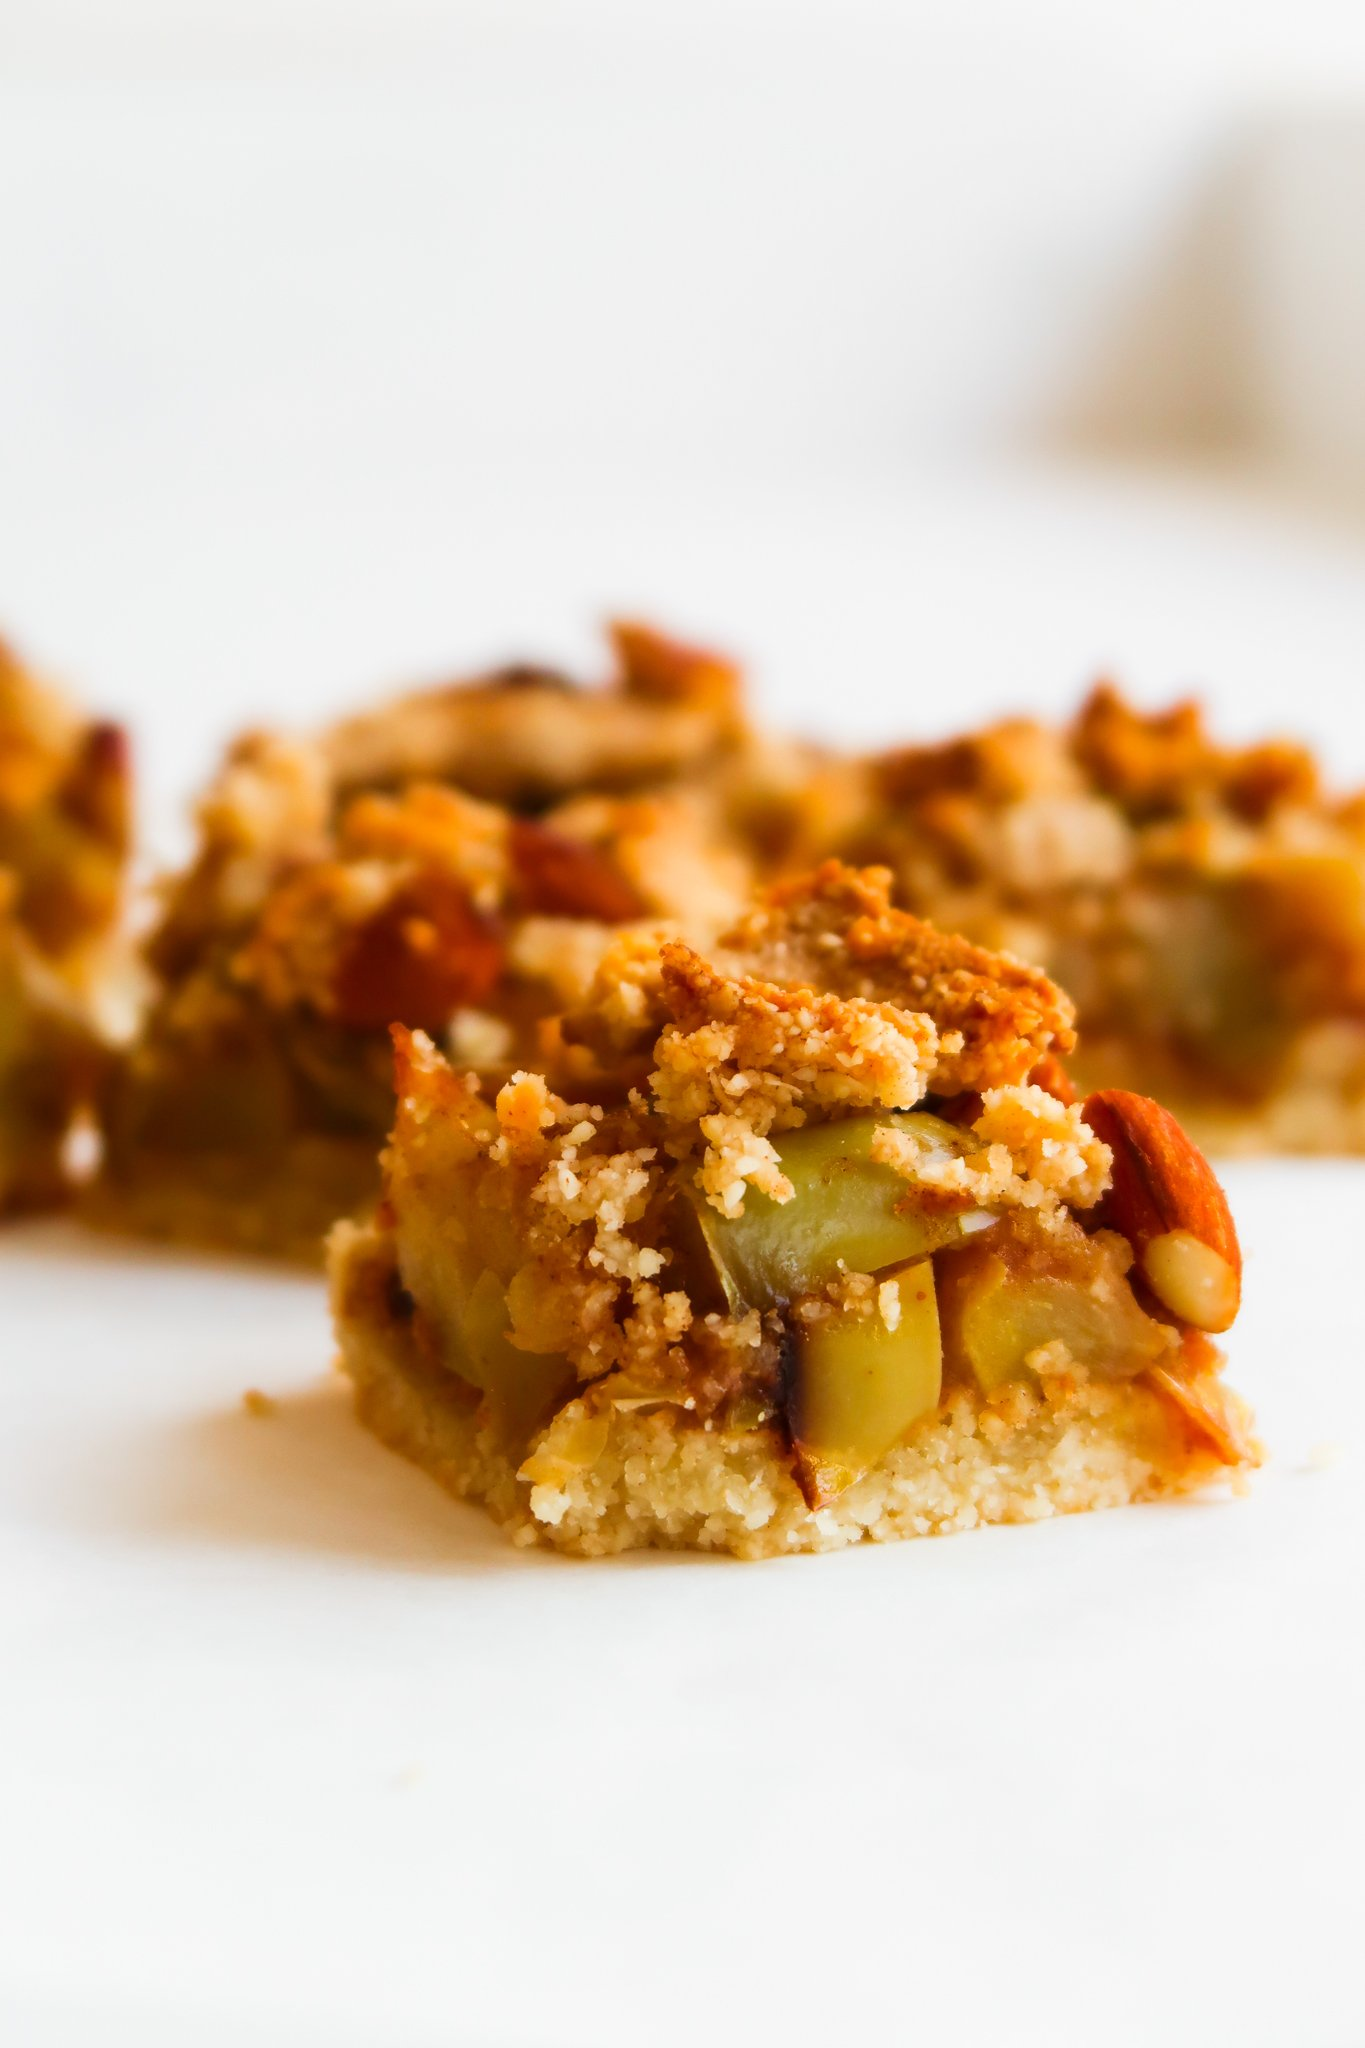 These healthy apple crumble bars are such an easy and delicious fall recipe! Using simple nourishing ingredients like apples, almond flour, maple syrup, coconut oil, and cinnamon, this easy healthy apple recipe is gluten-free, dairy-free, egg-free, paleo, and vegan. It's just the perfect apple dessert or apple breakfast idea!